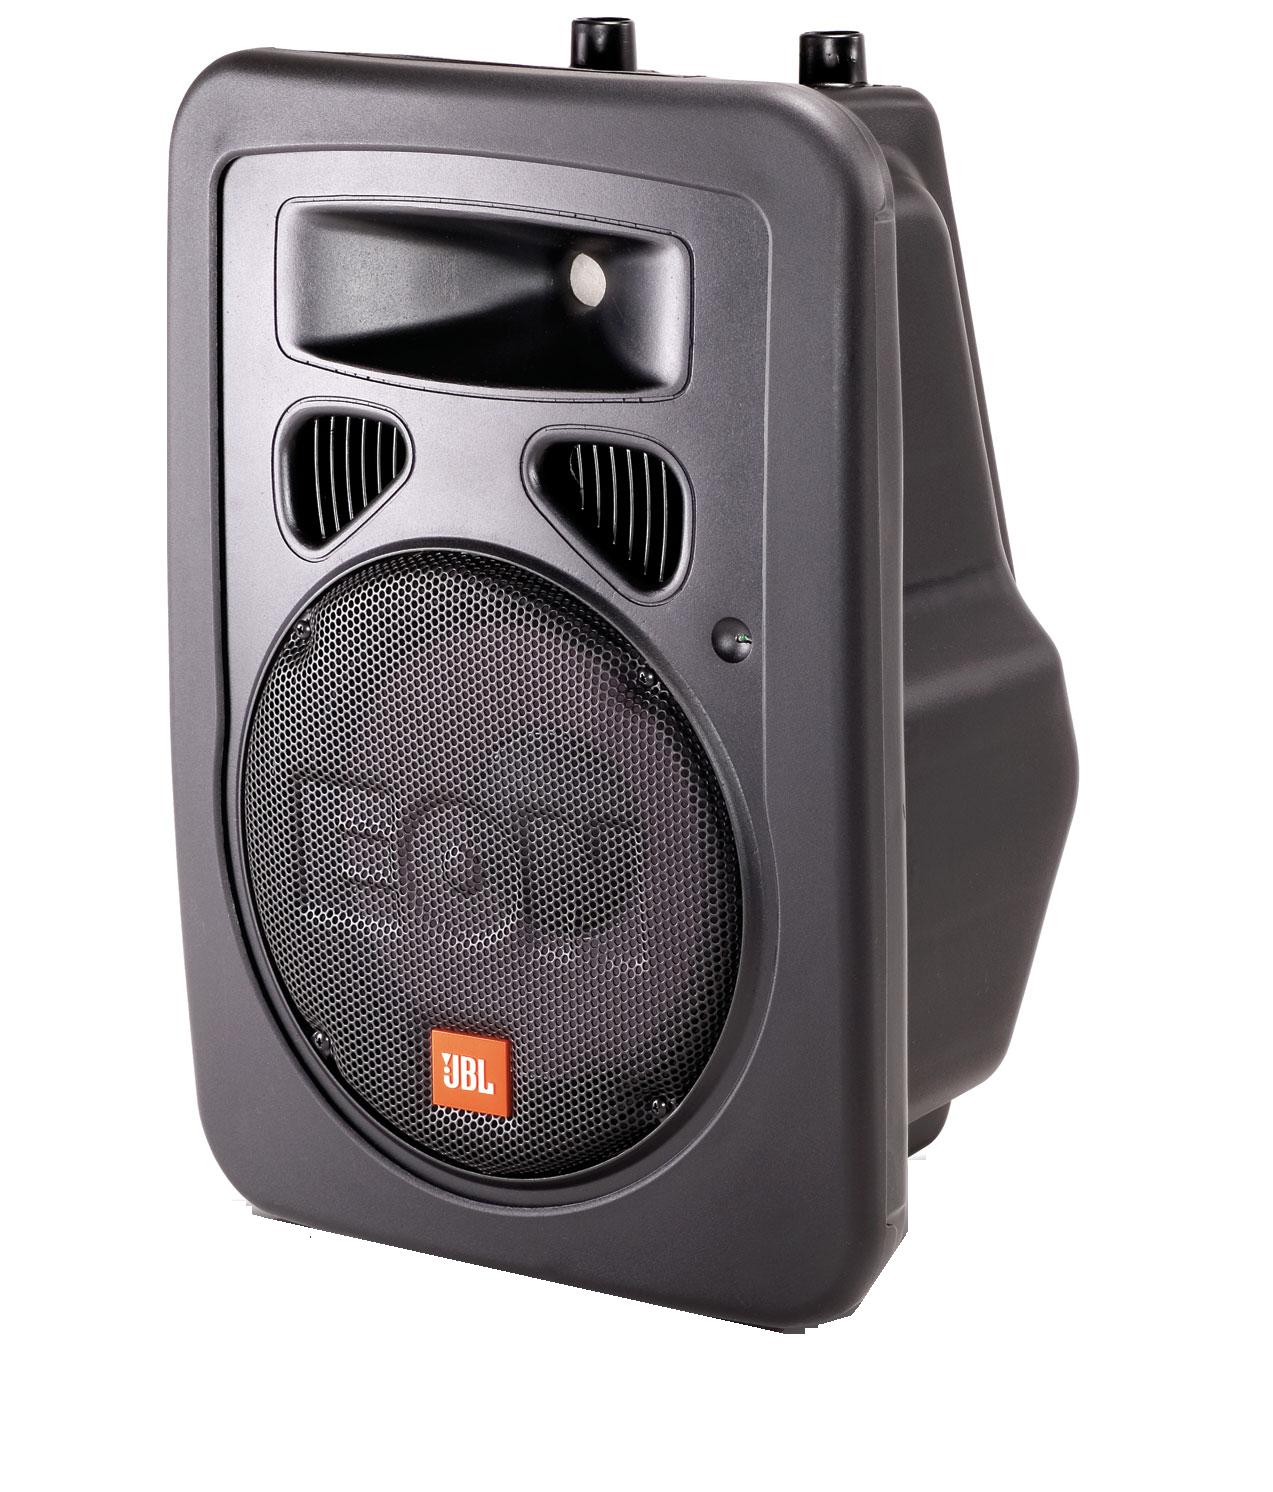 jbl eon 10 g2 salt lake backline. Black Bedroom Furniture Sets. Home Design Ideas